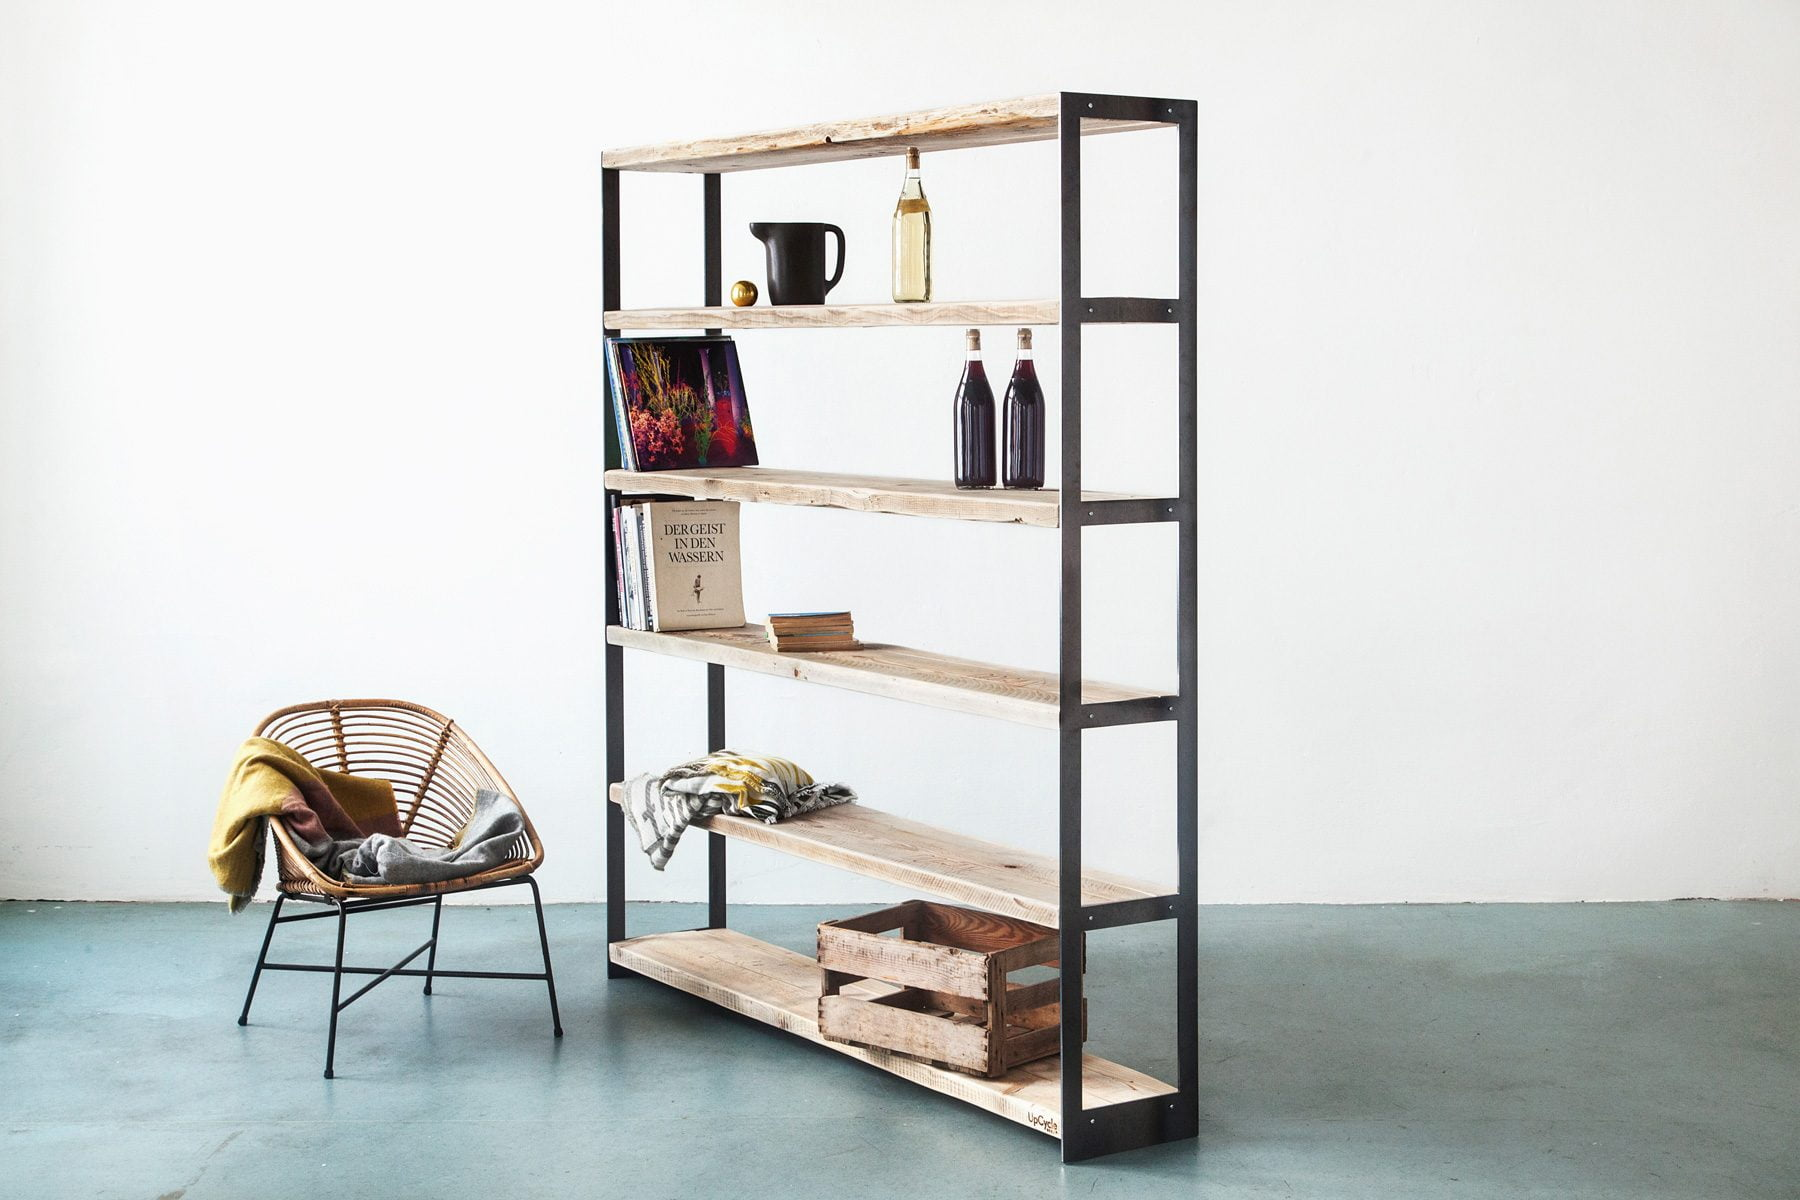 UpCycle-Berlin-PALINDROM-Regal-STORE-Aufbewahrung